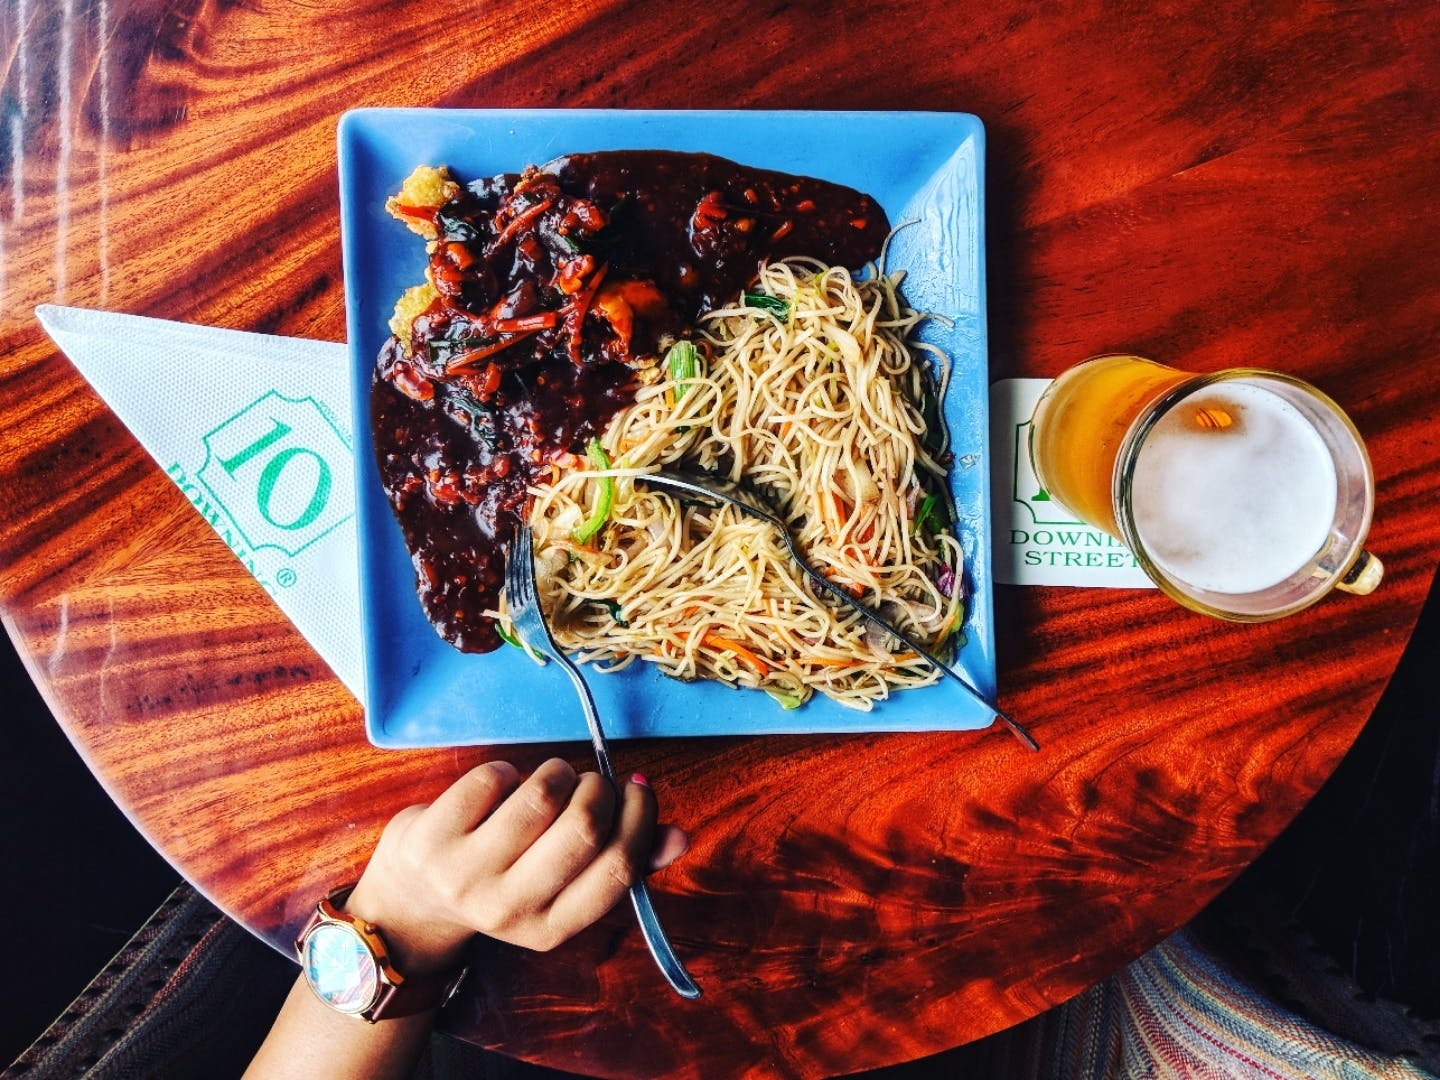 Dish,Cuisine,Food,Ingredient,Spaghetti,Pancit,Meal,Recipe,Noodle,Hot dry noodles